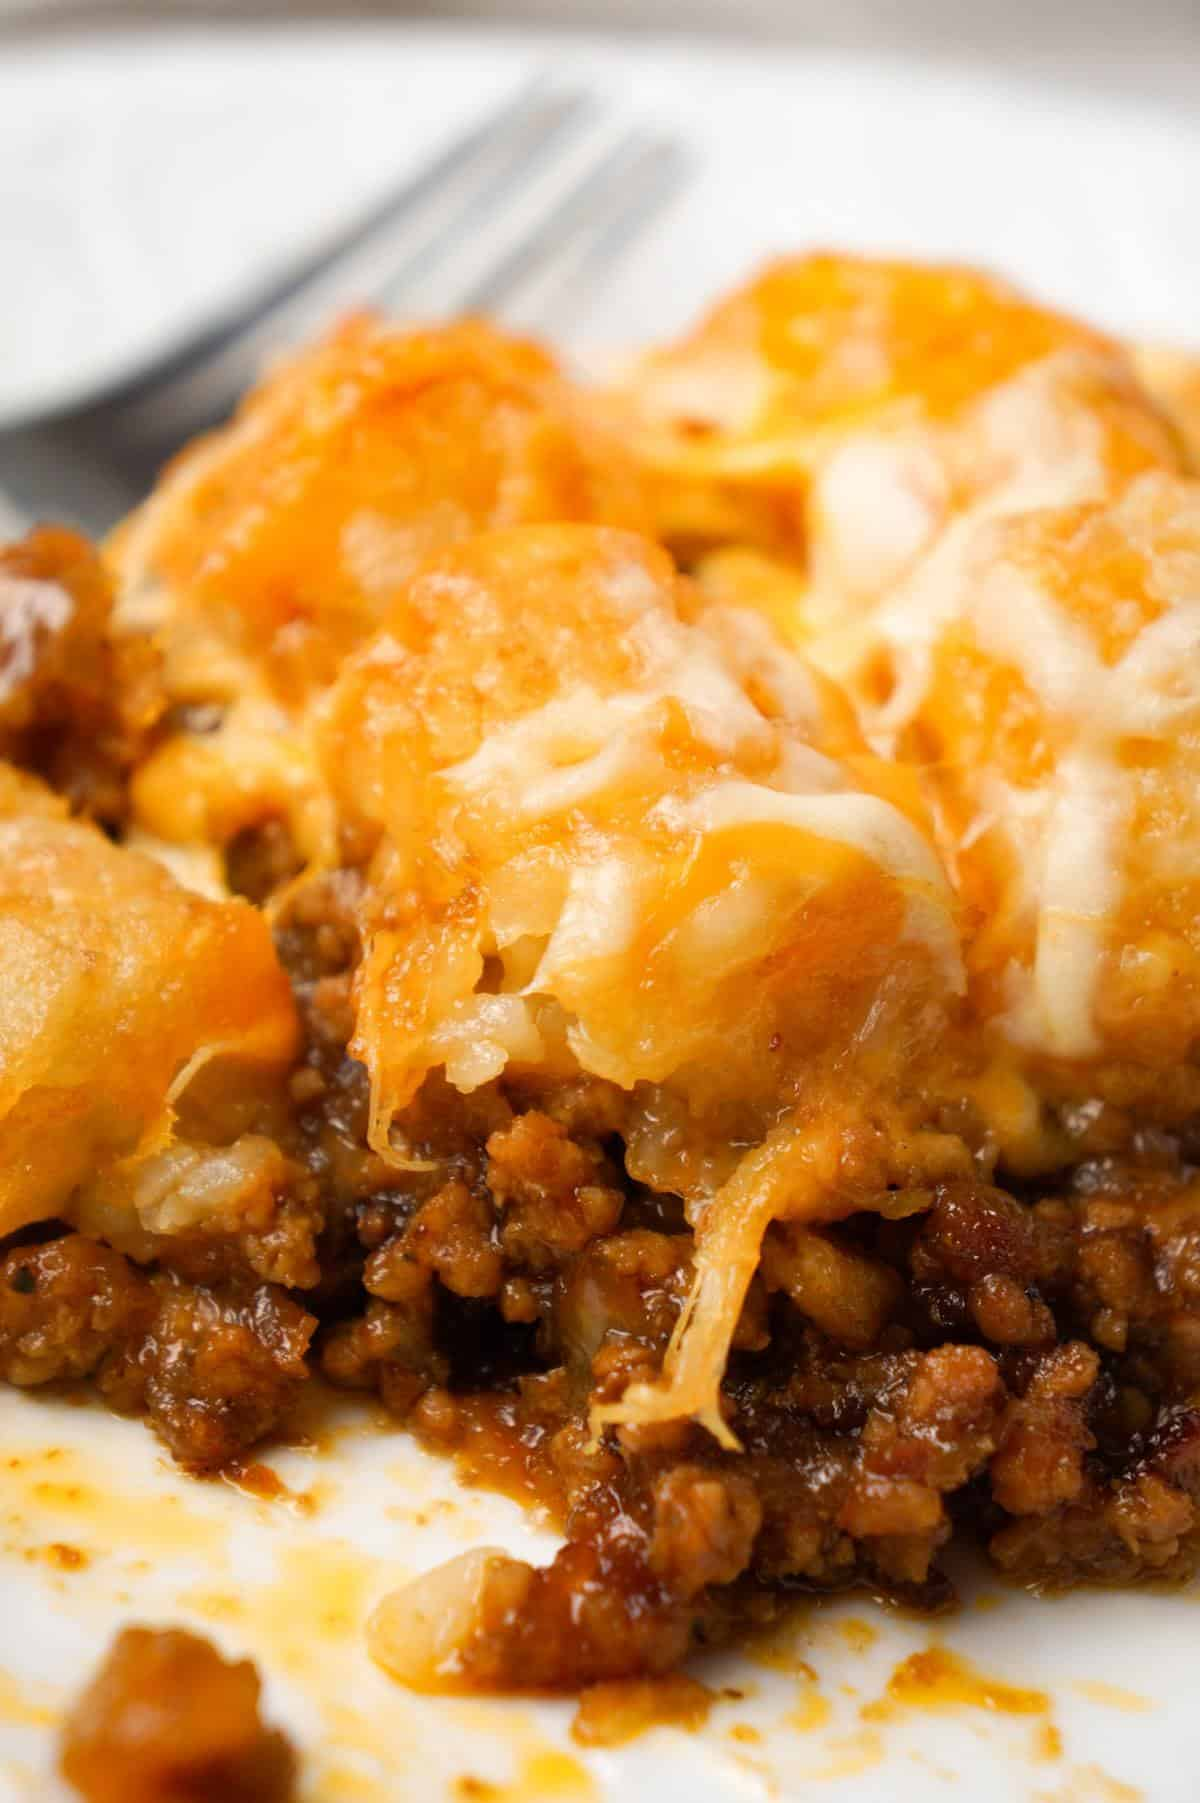 Dr Pepper Pork Tater Tot Casserole is a hearty dish with a base of ground pork cooked in Dr Pepper and BBQ sauce and topped with tater tops and shredded cheese.